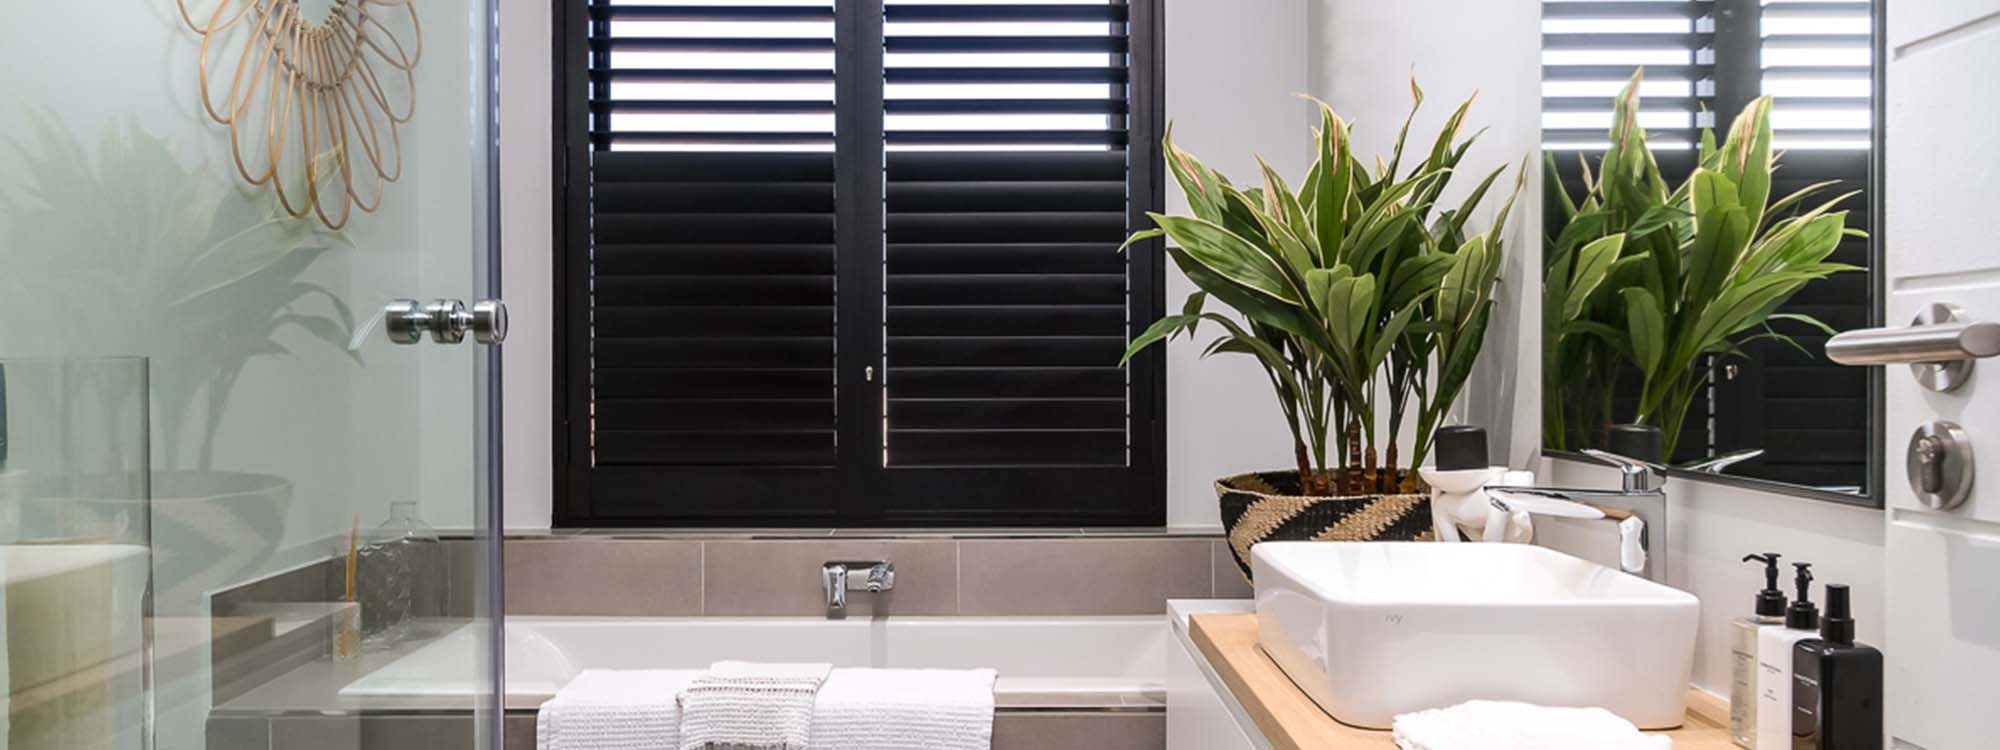 Security shutters for peace of mind